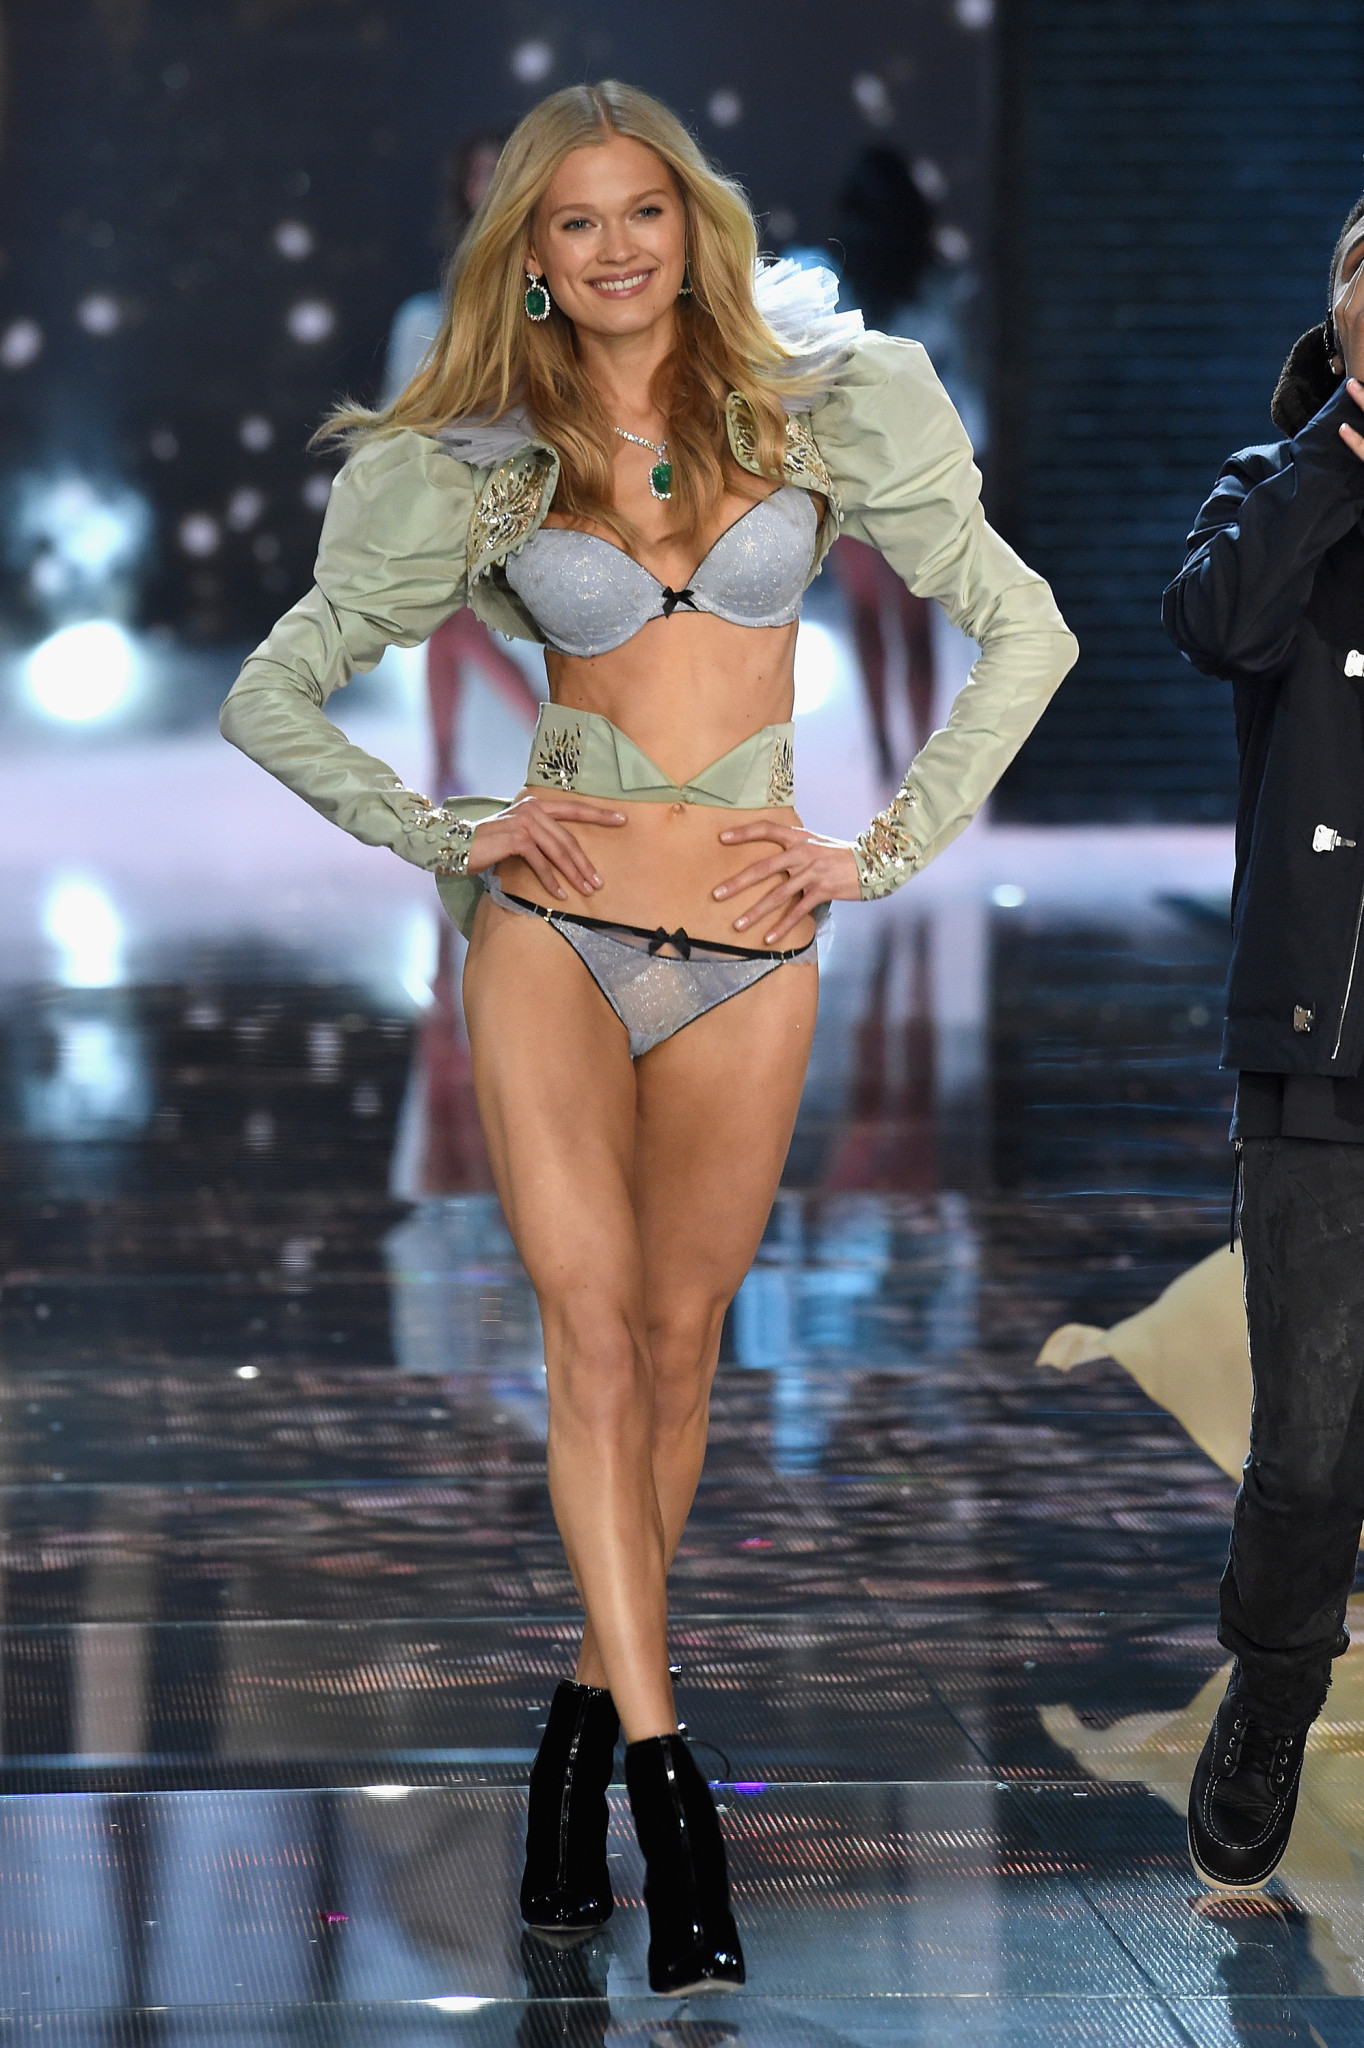 NEW YORK, NY - NOVEMBER 10: Model Vita Sidorkina from Russia walks the runway during the 2015 Victoria's Secret Fashion Show at Lexington Avenue Armory on November 10, 2015 in New York City. (Photo by Dimitrios Kambouris/Getty Images for Victoria's Secret) *** Local Caption *** Vita Sidorkina